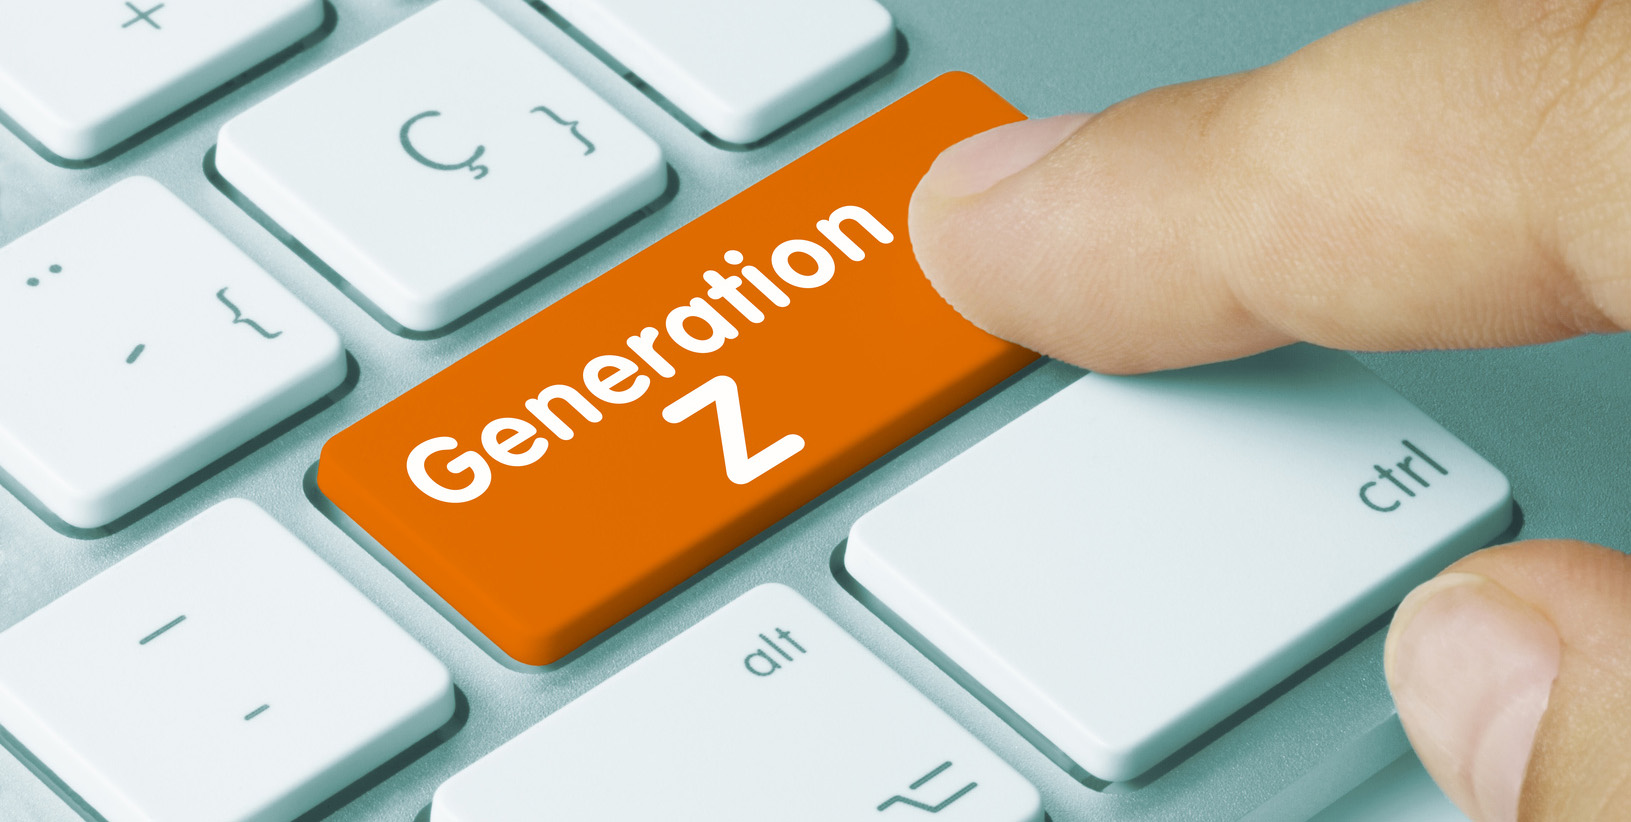 generation y and points question Meet generation z: the second generation within the giant millennial cohort debate this very question, just as experts differ about the exact research points to seven key strategies for bringing out the best in.